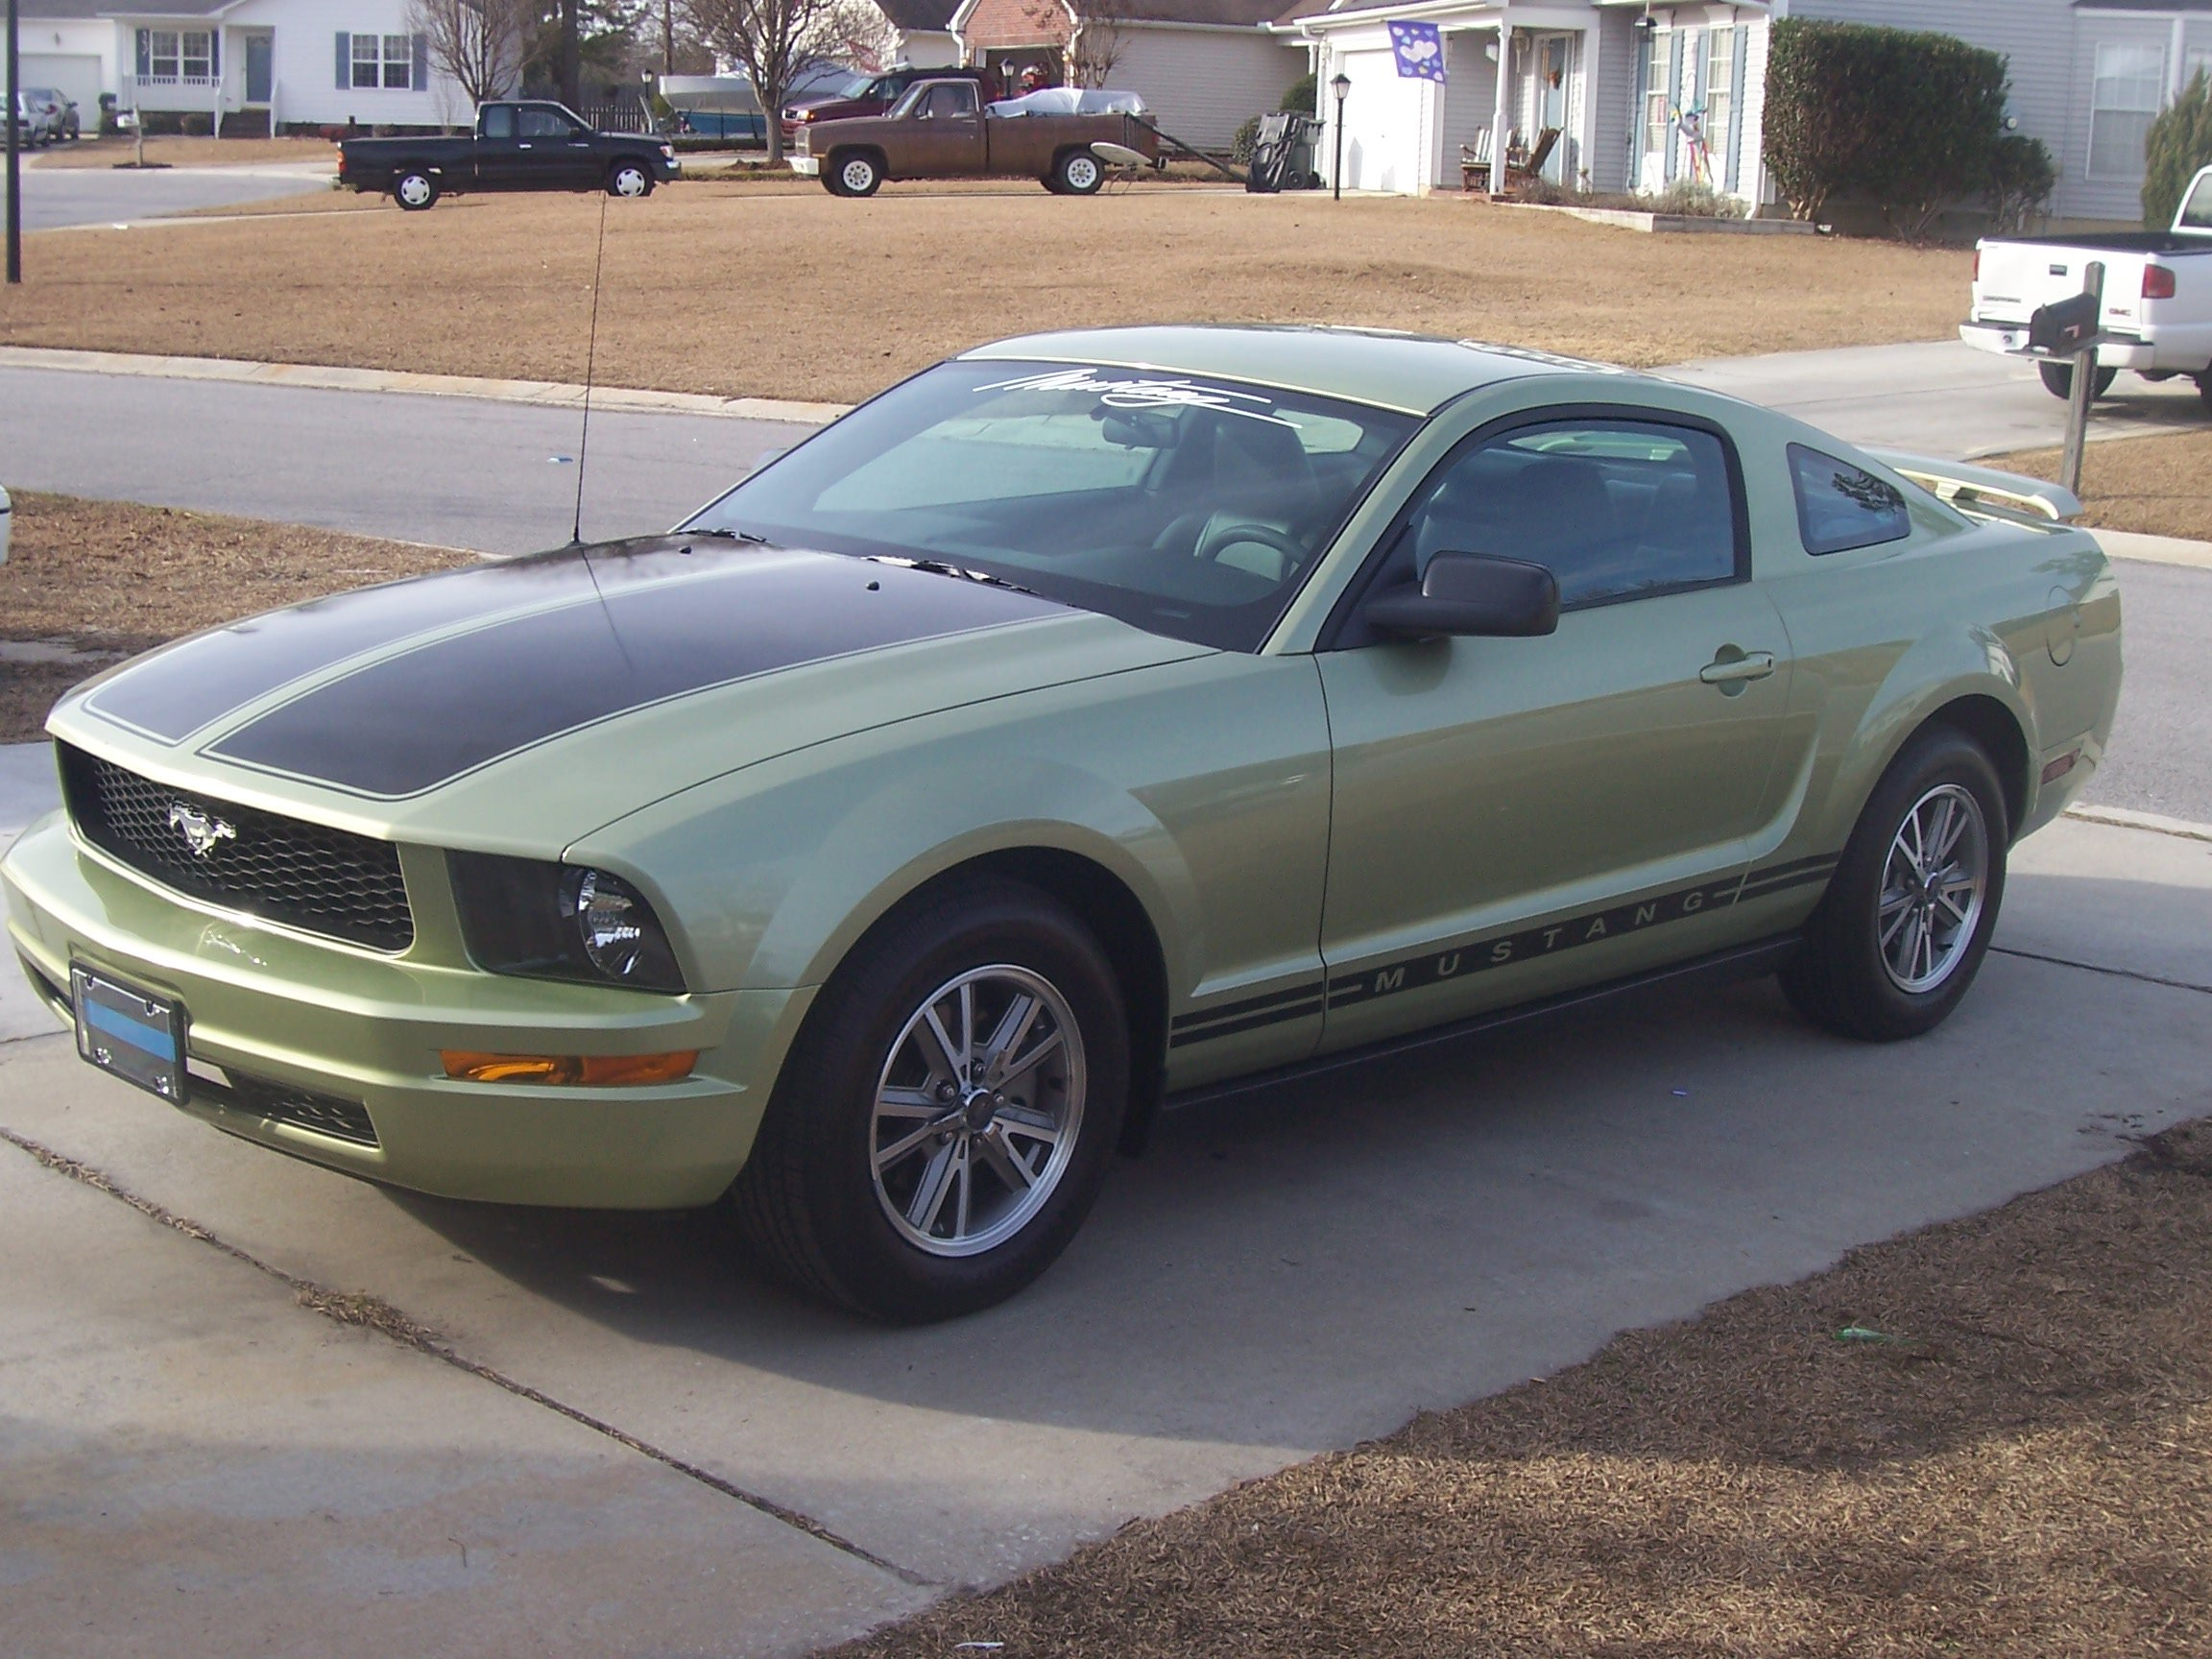 2005 Mustang V6 Dual Exhaust  Any News